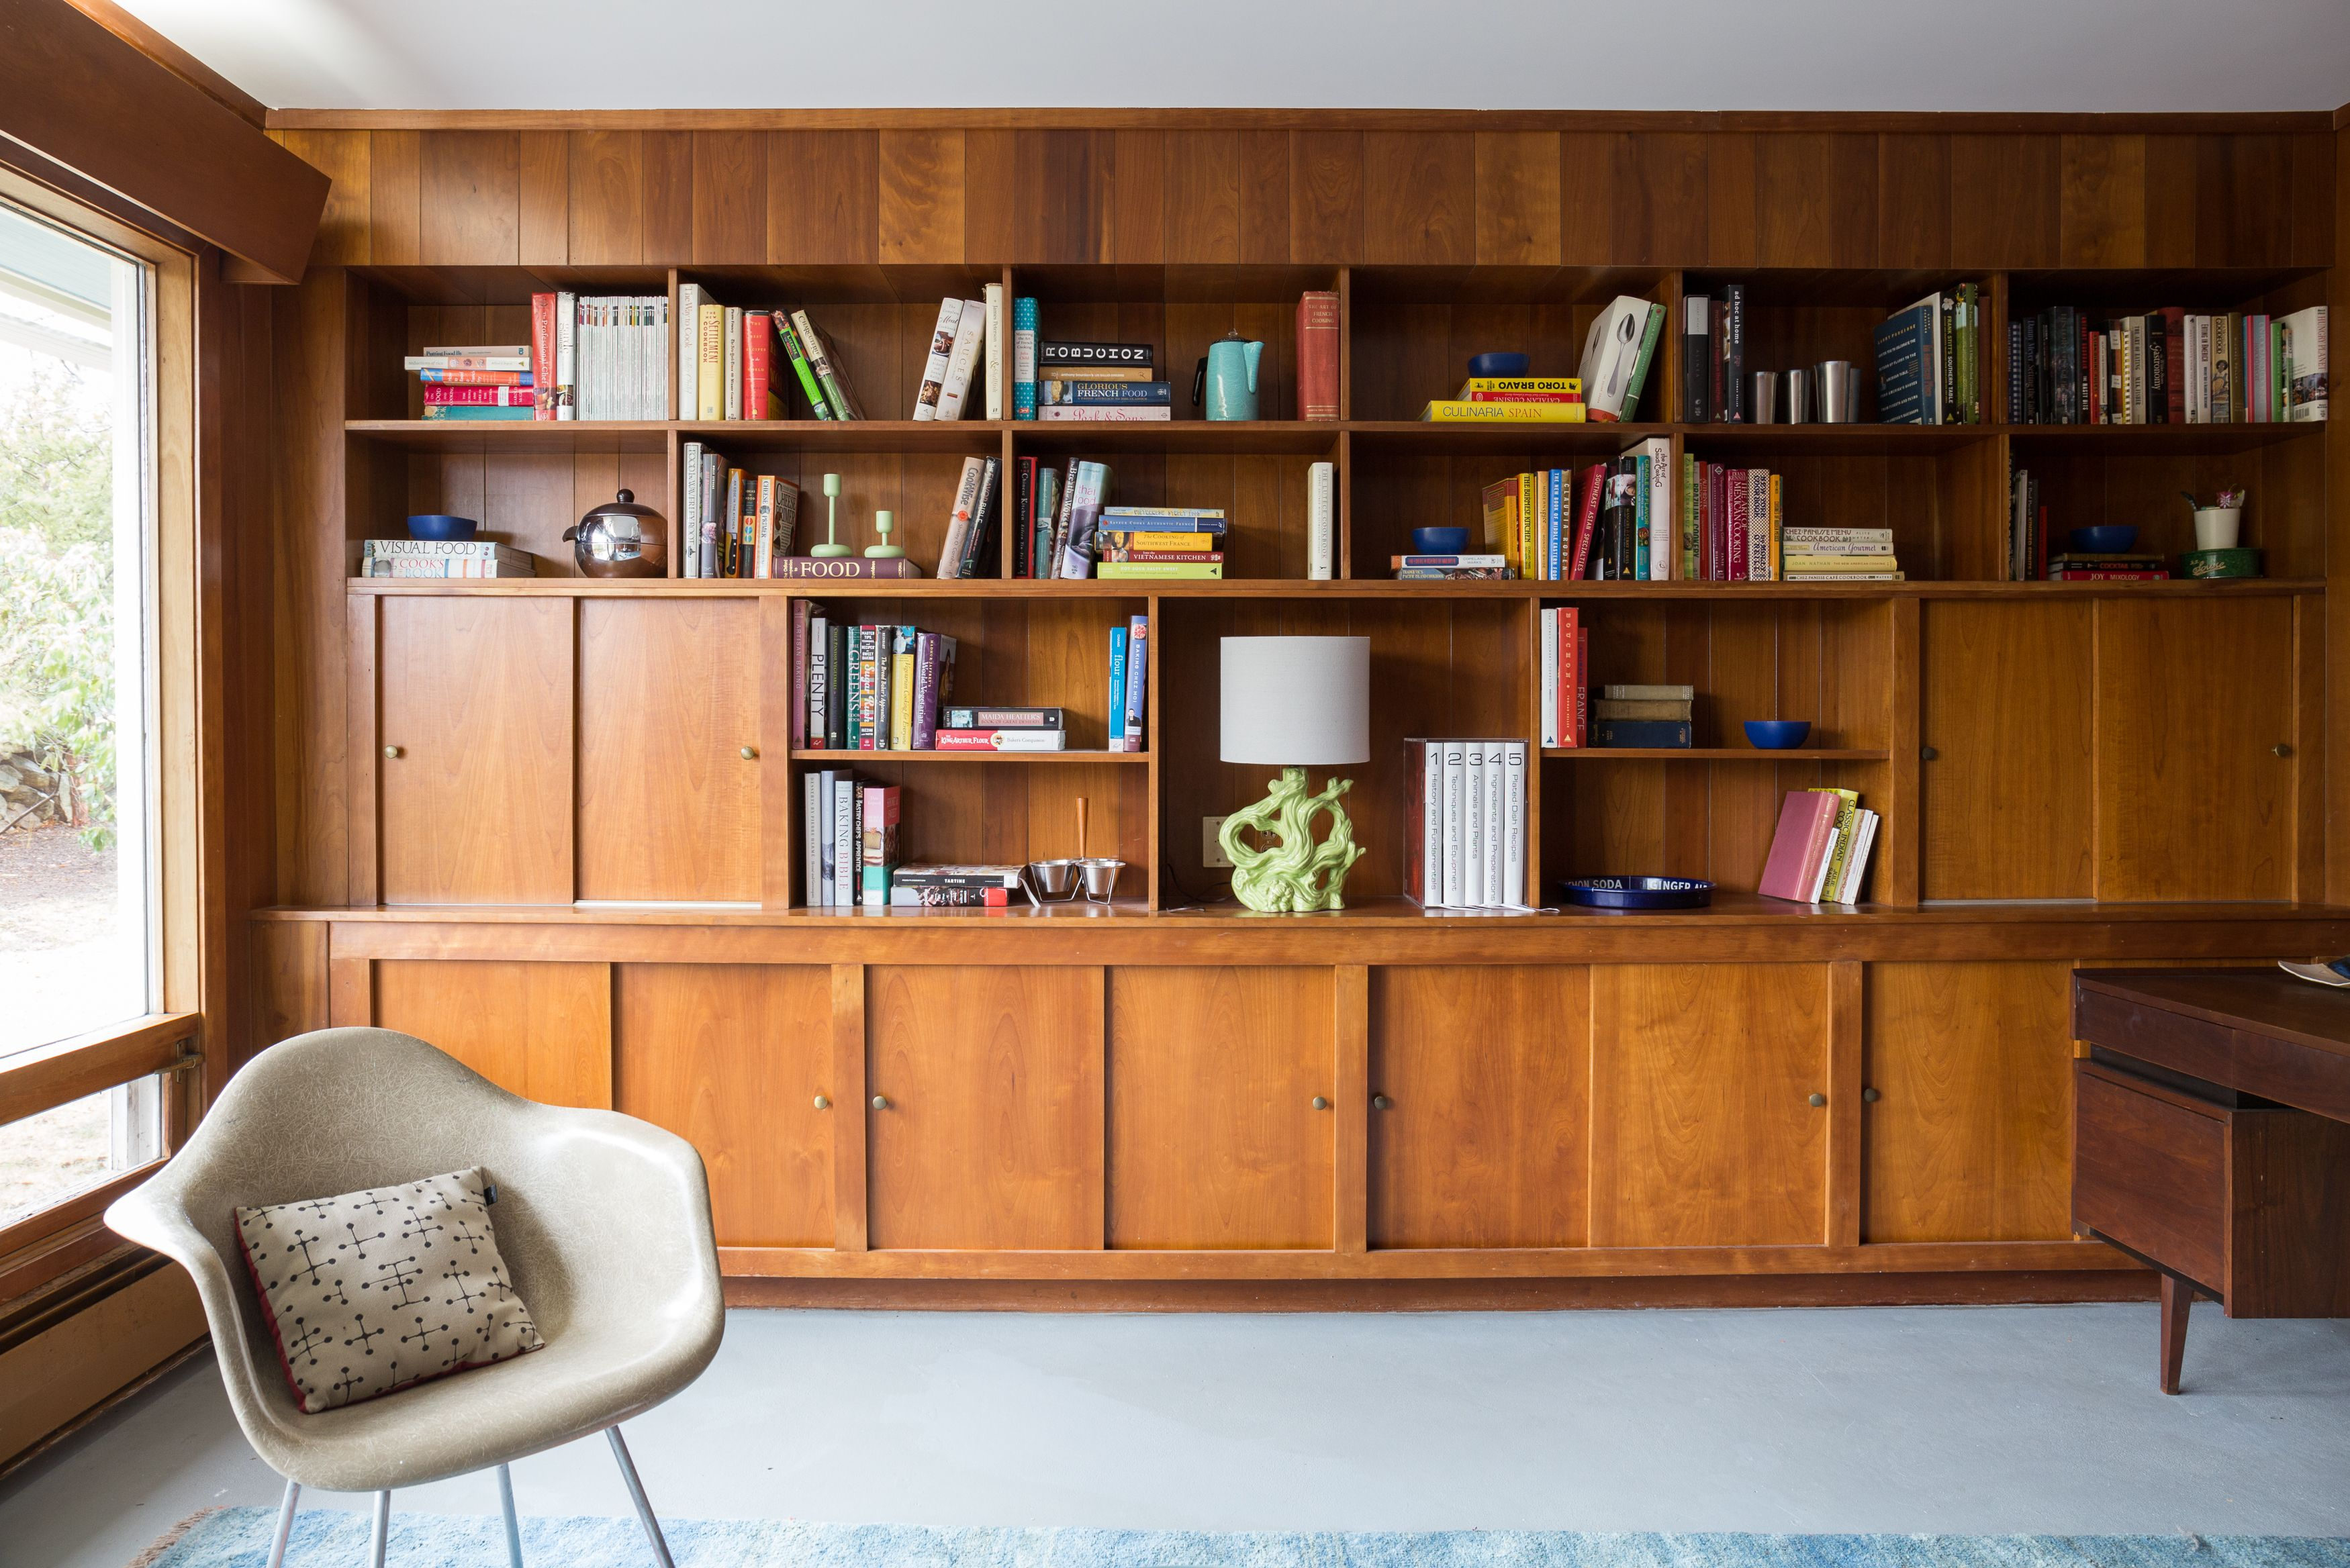 A lovingly restored midcentury home in rhode island carpets